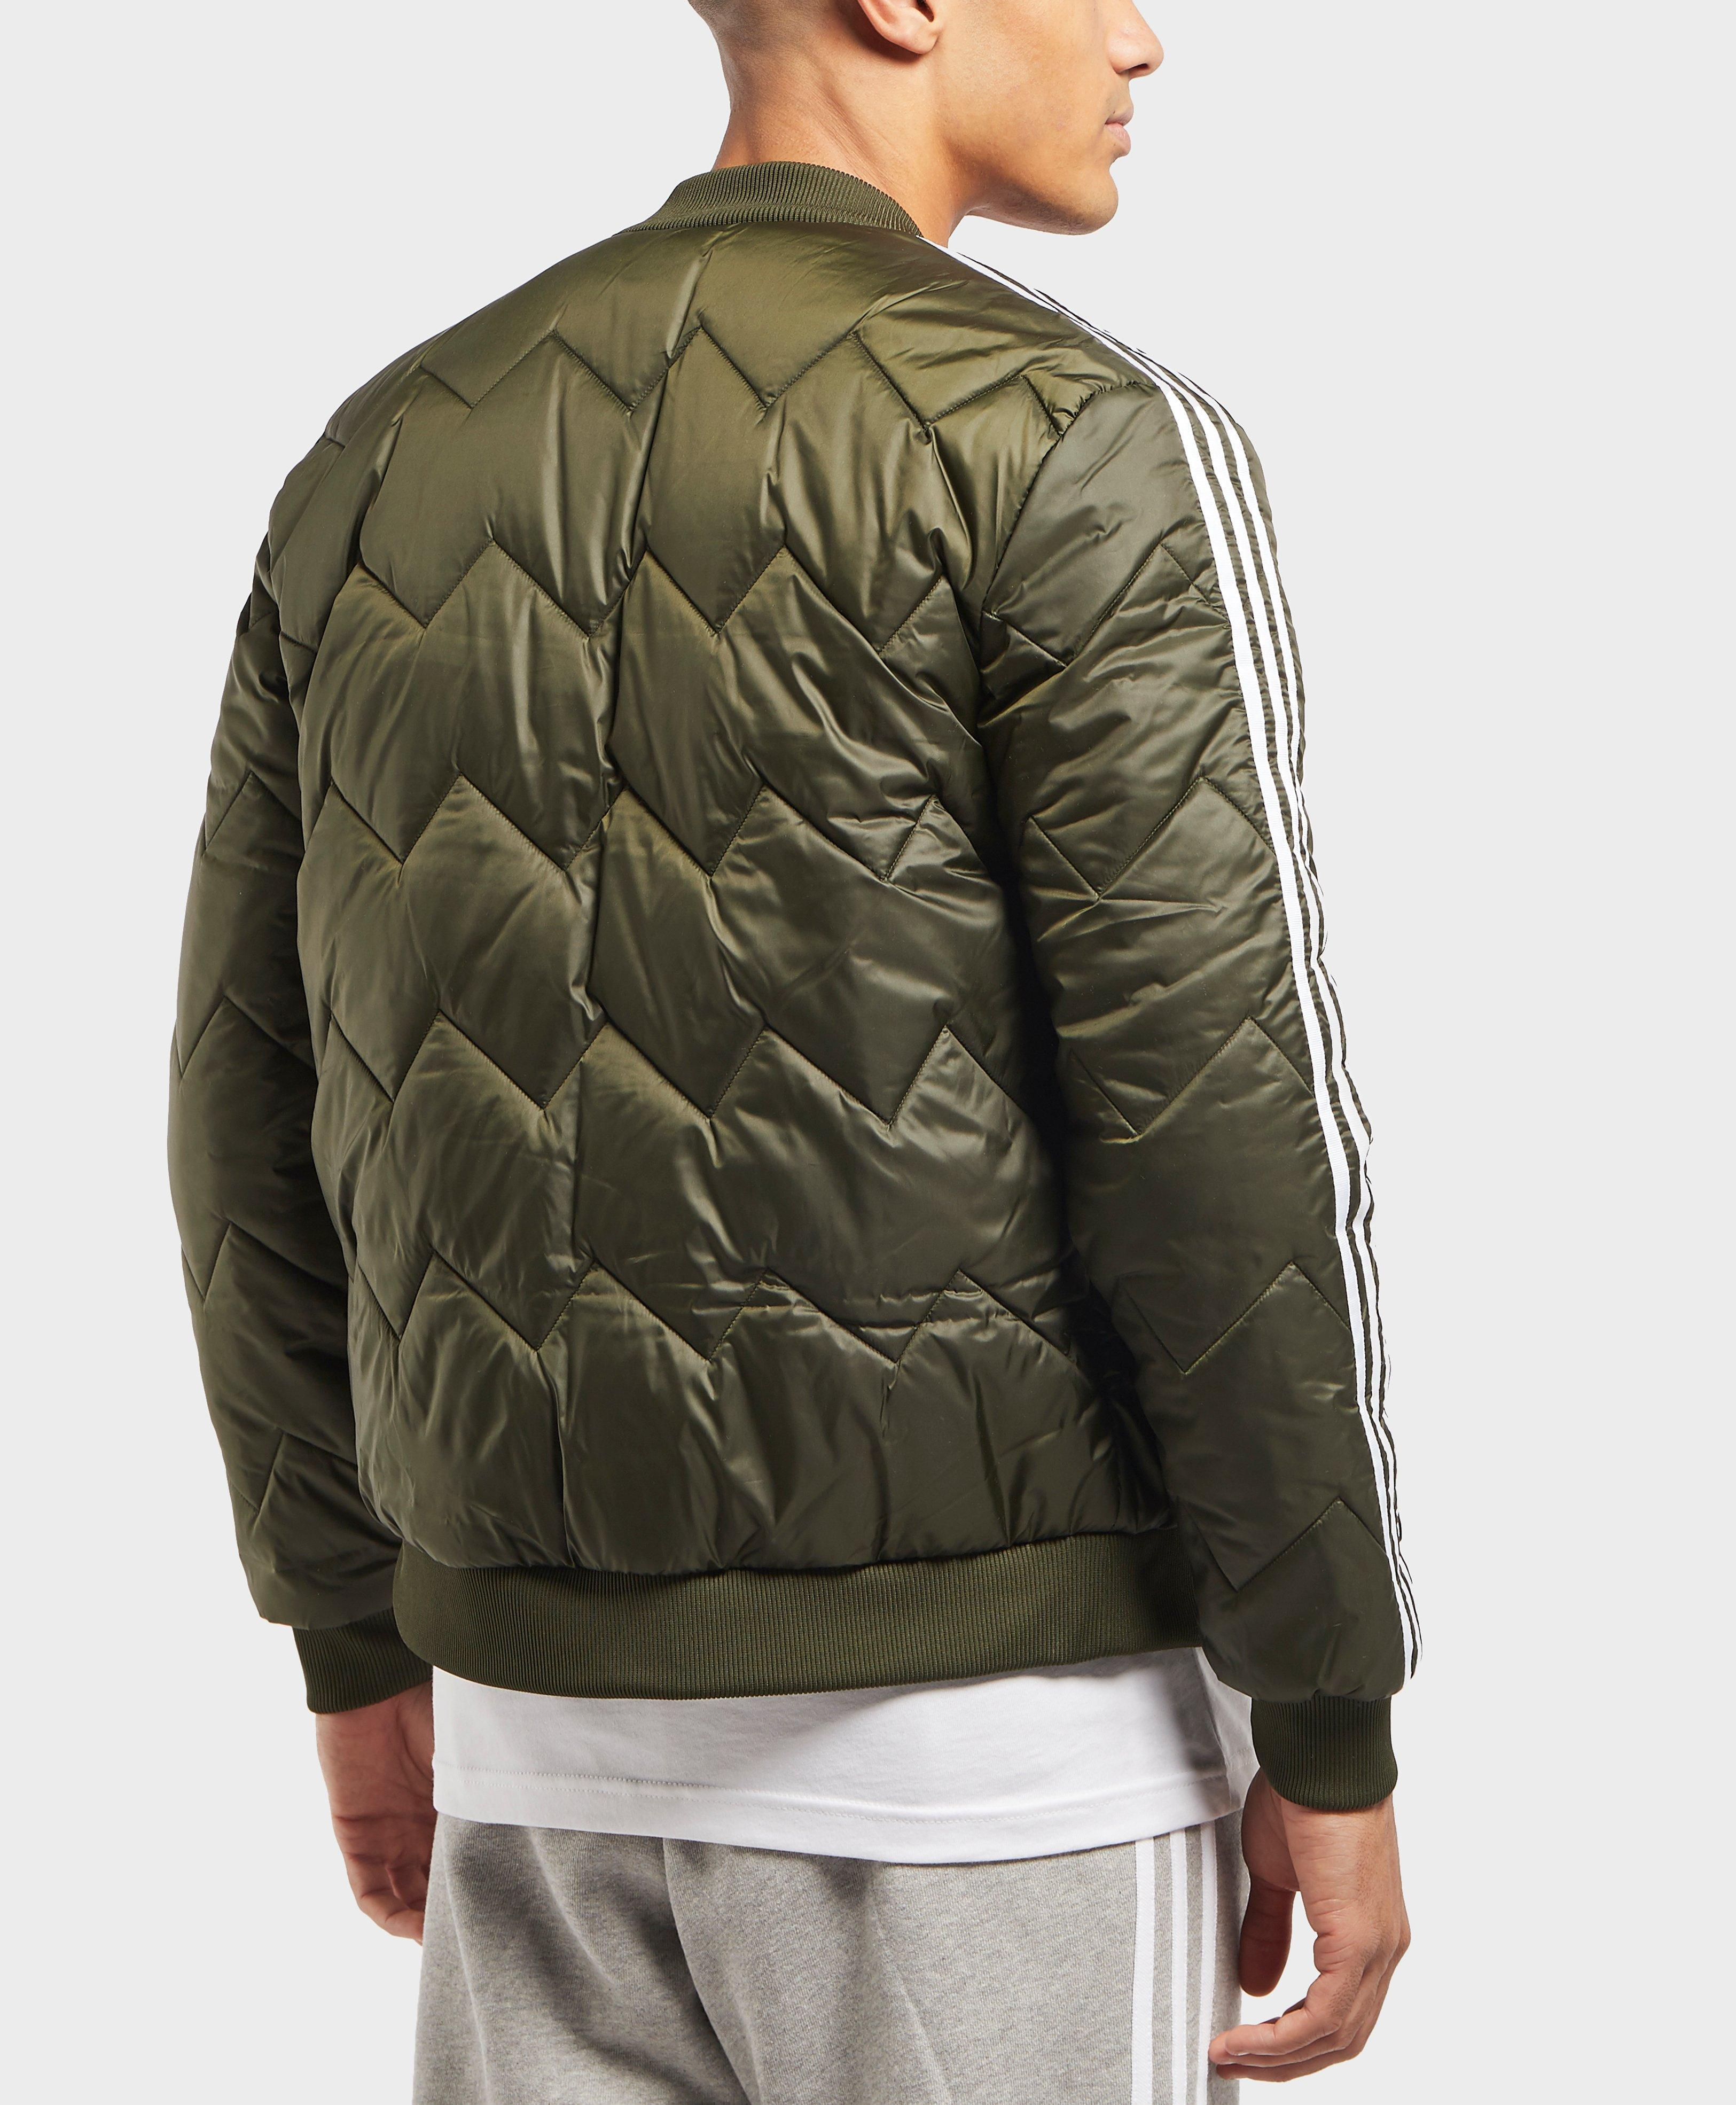 Green Originals Sst Adidas Jacket In For Bomber Men Quilted Lyst UYddqw1